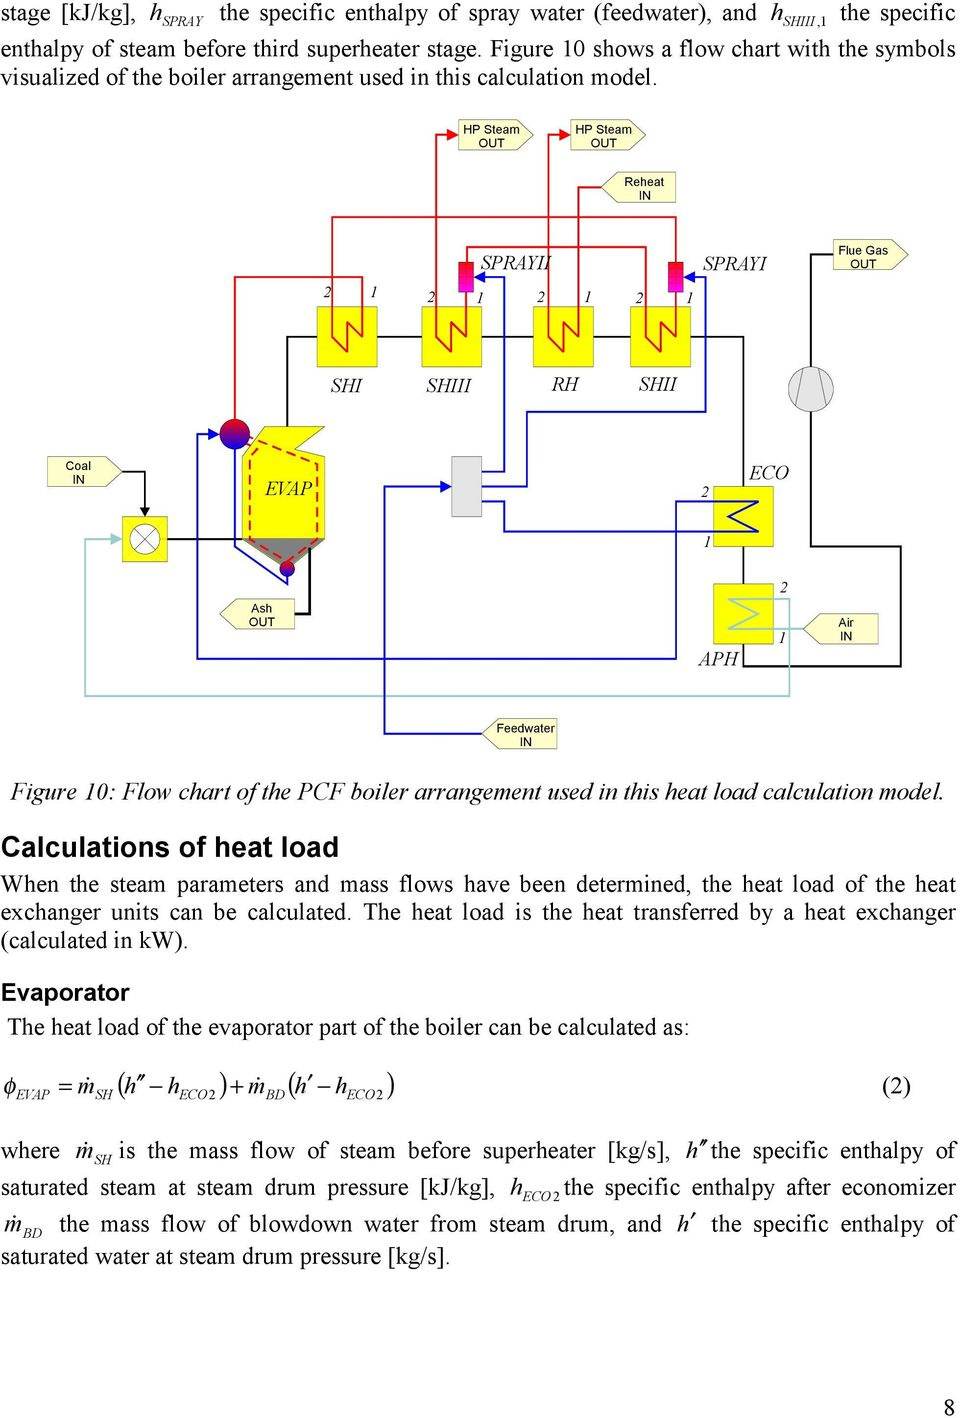 HP Steam OUT HP Steam OUT Reheat IN SPRAYII 2 1 2 1 2 1 2 1 SPRAYI Flue Gas OUT SHI SHIII RH SHII Coal IN EVAP 2 ECO 1 2 Ash OUT APH 1 Air IN Feedwater IN Figure 10: Flow chart of the PCF boiler